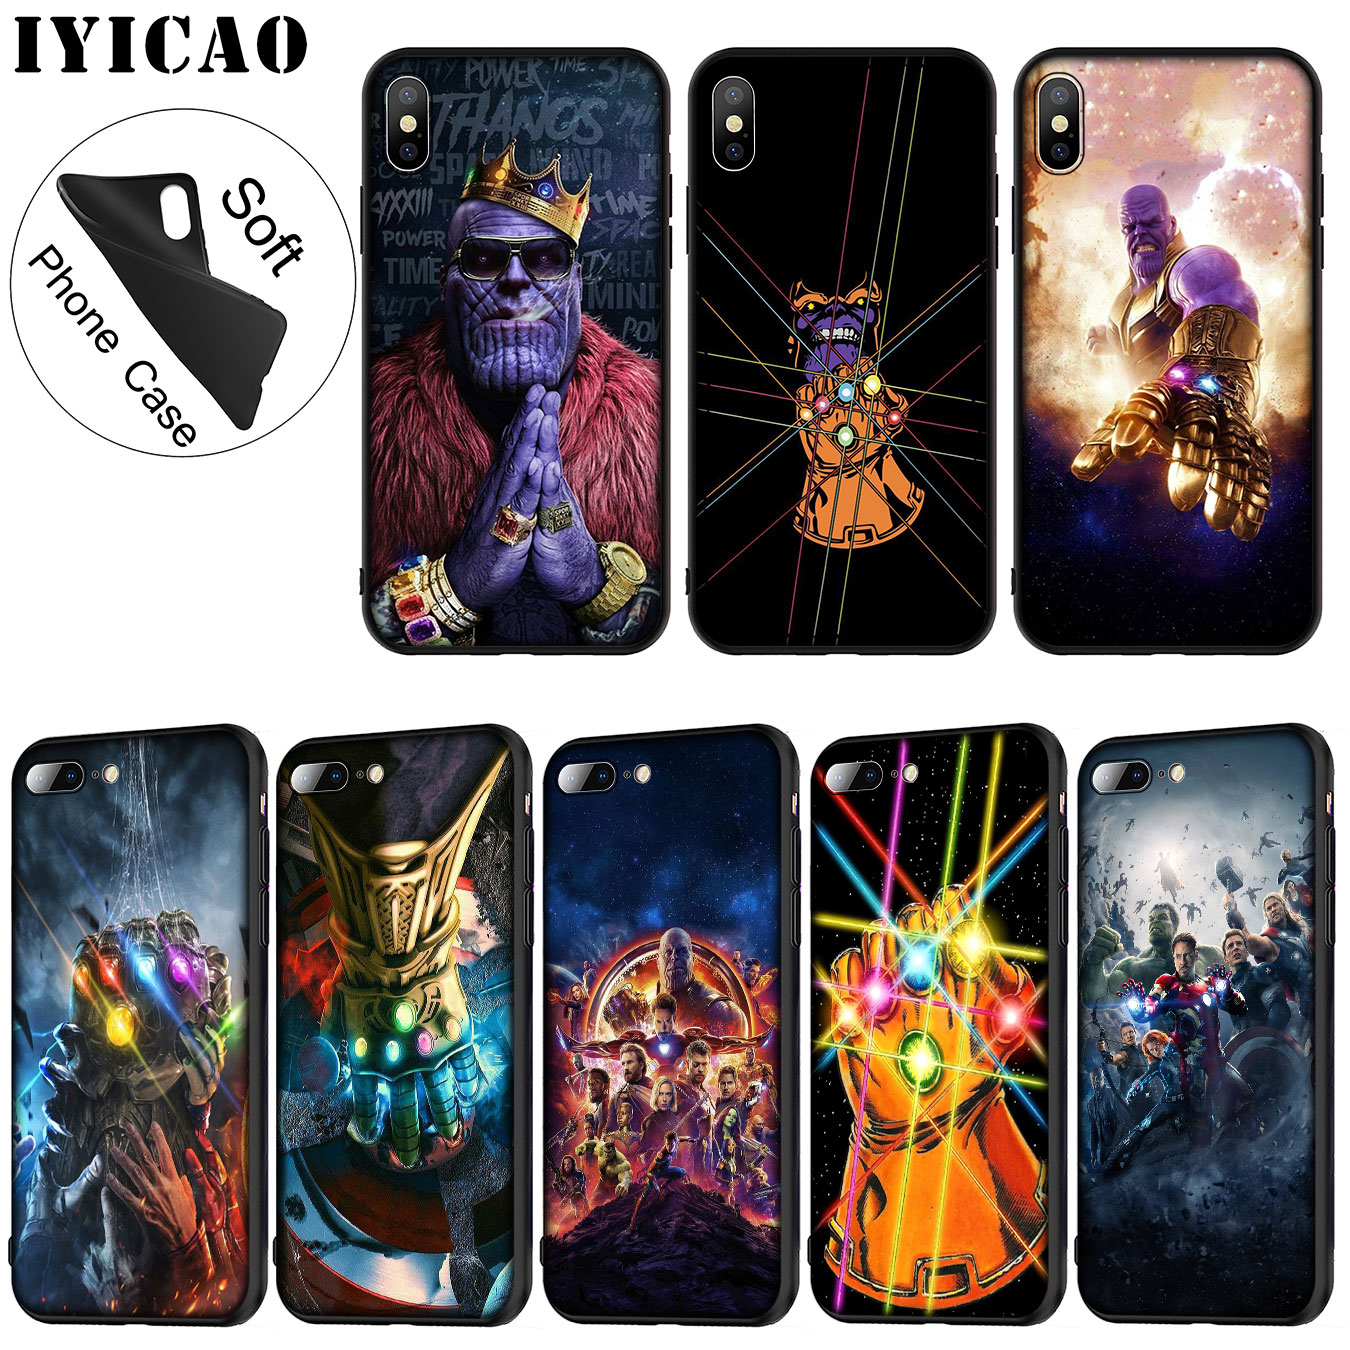 IYICAO The Avengers Thanos  Marvel Soft Silicone Phone Case for iPhone XR X XS 11 Pro Max 6 6S 7 8 Plus 5 5S SE TPU Black Cover